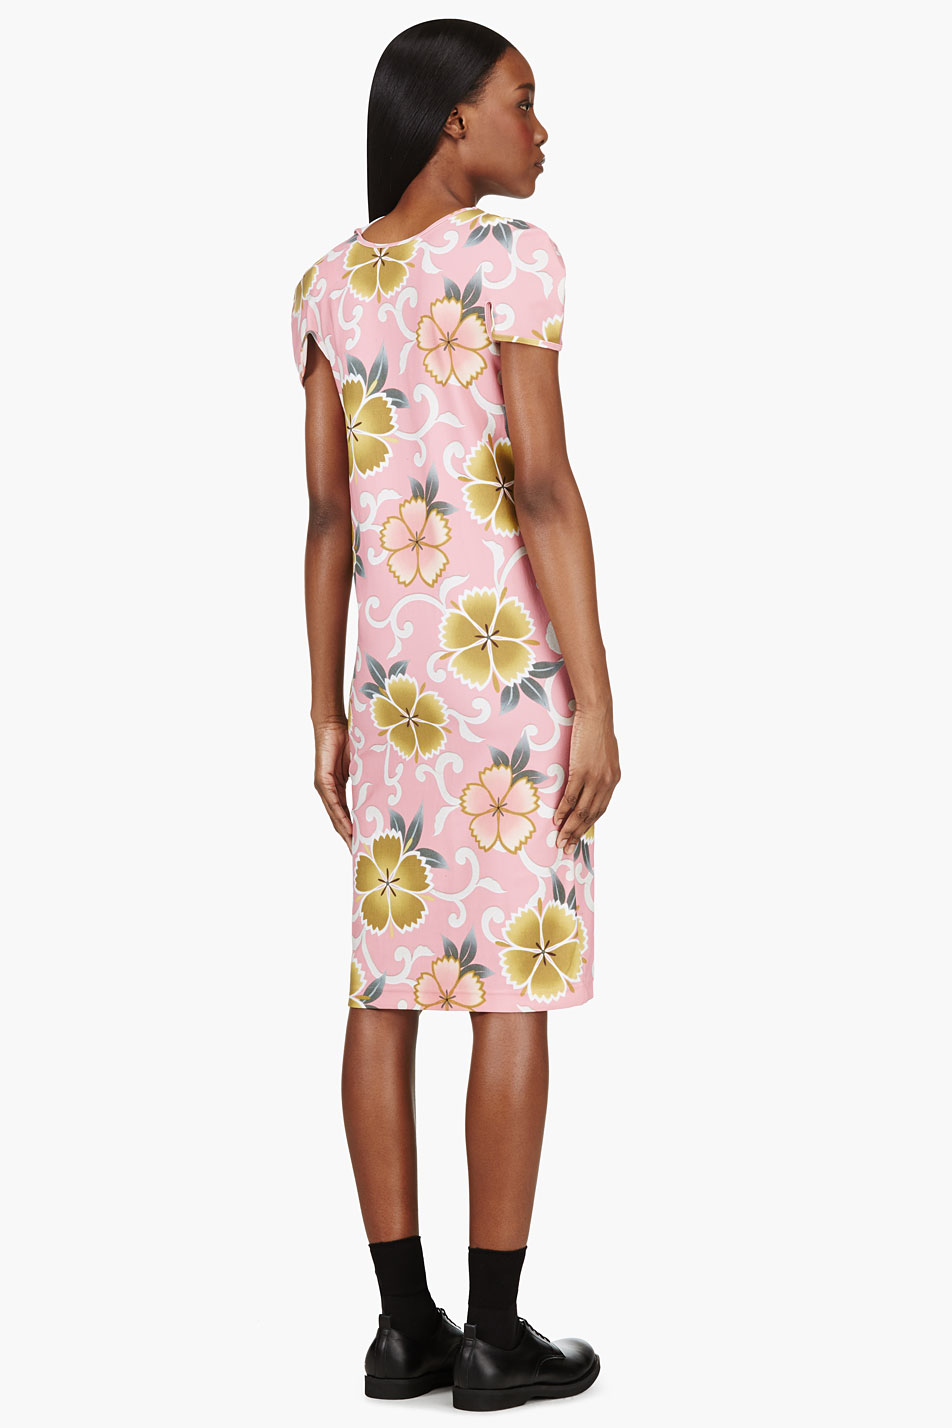 Comme-des-Garcons-Pink-Floral-Stretch-Dress_3